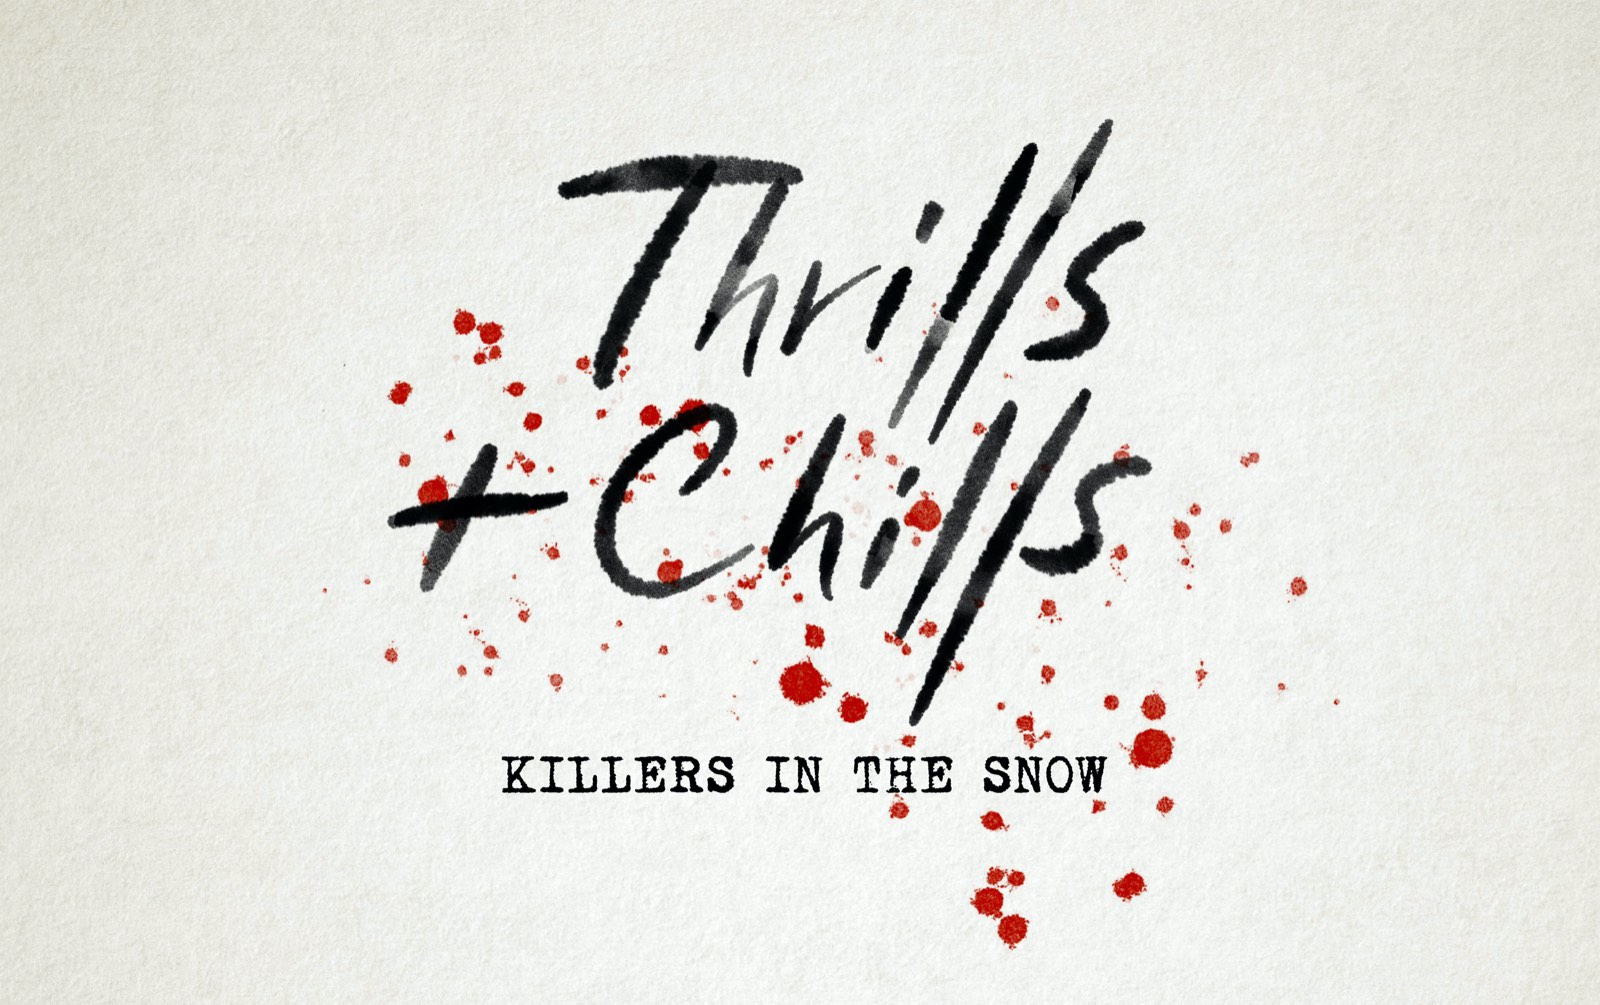 Close Up: Thrills & Chills: Killers in the Snow